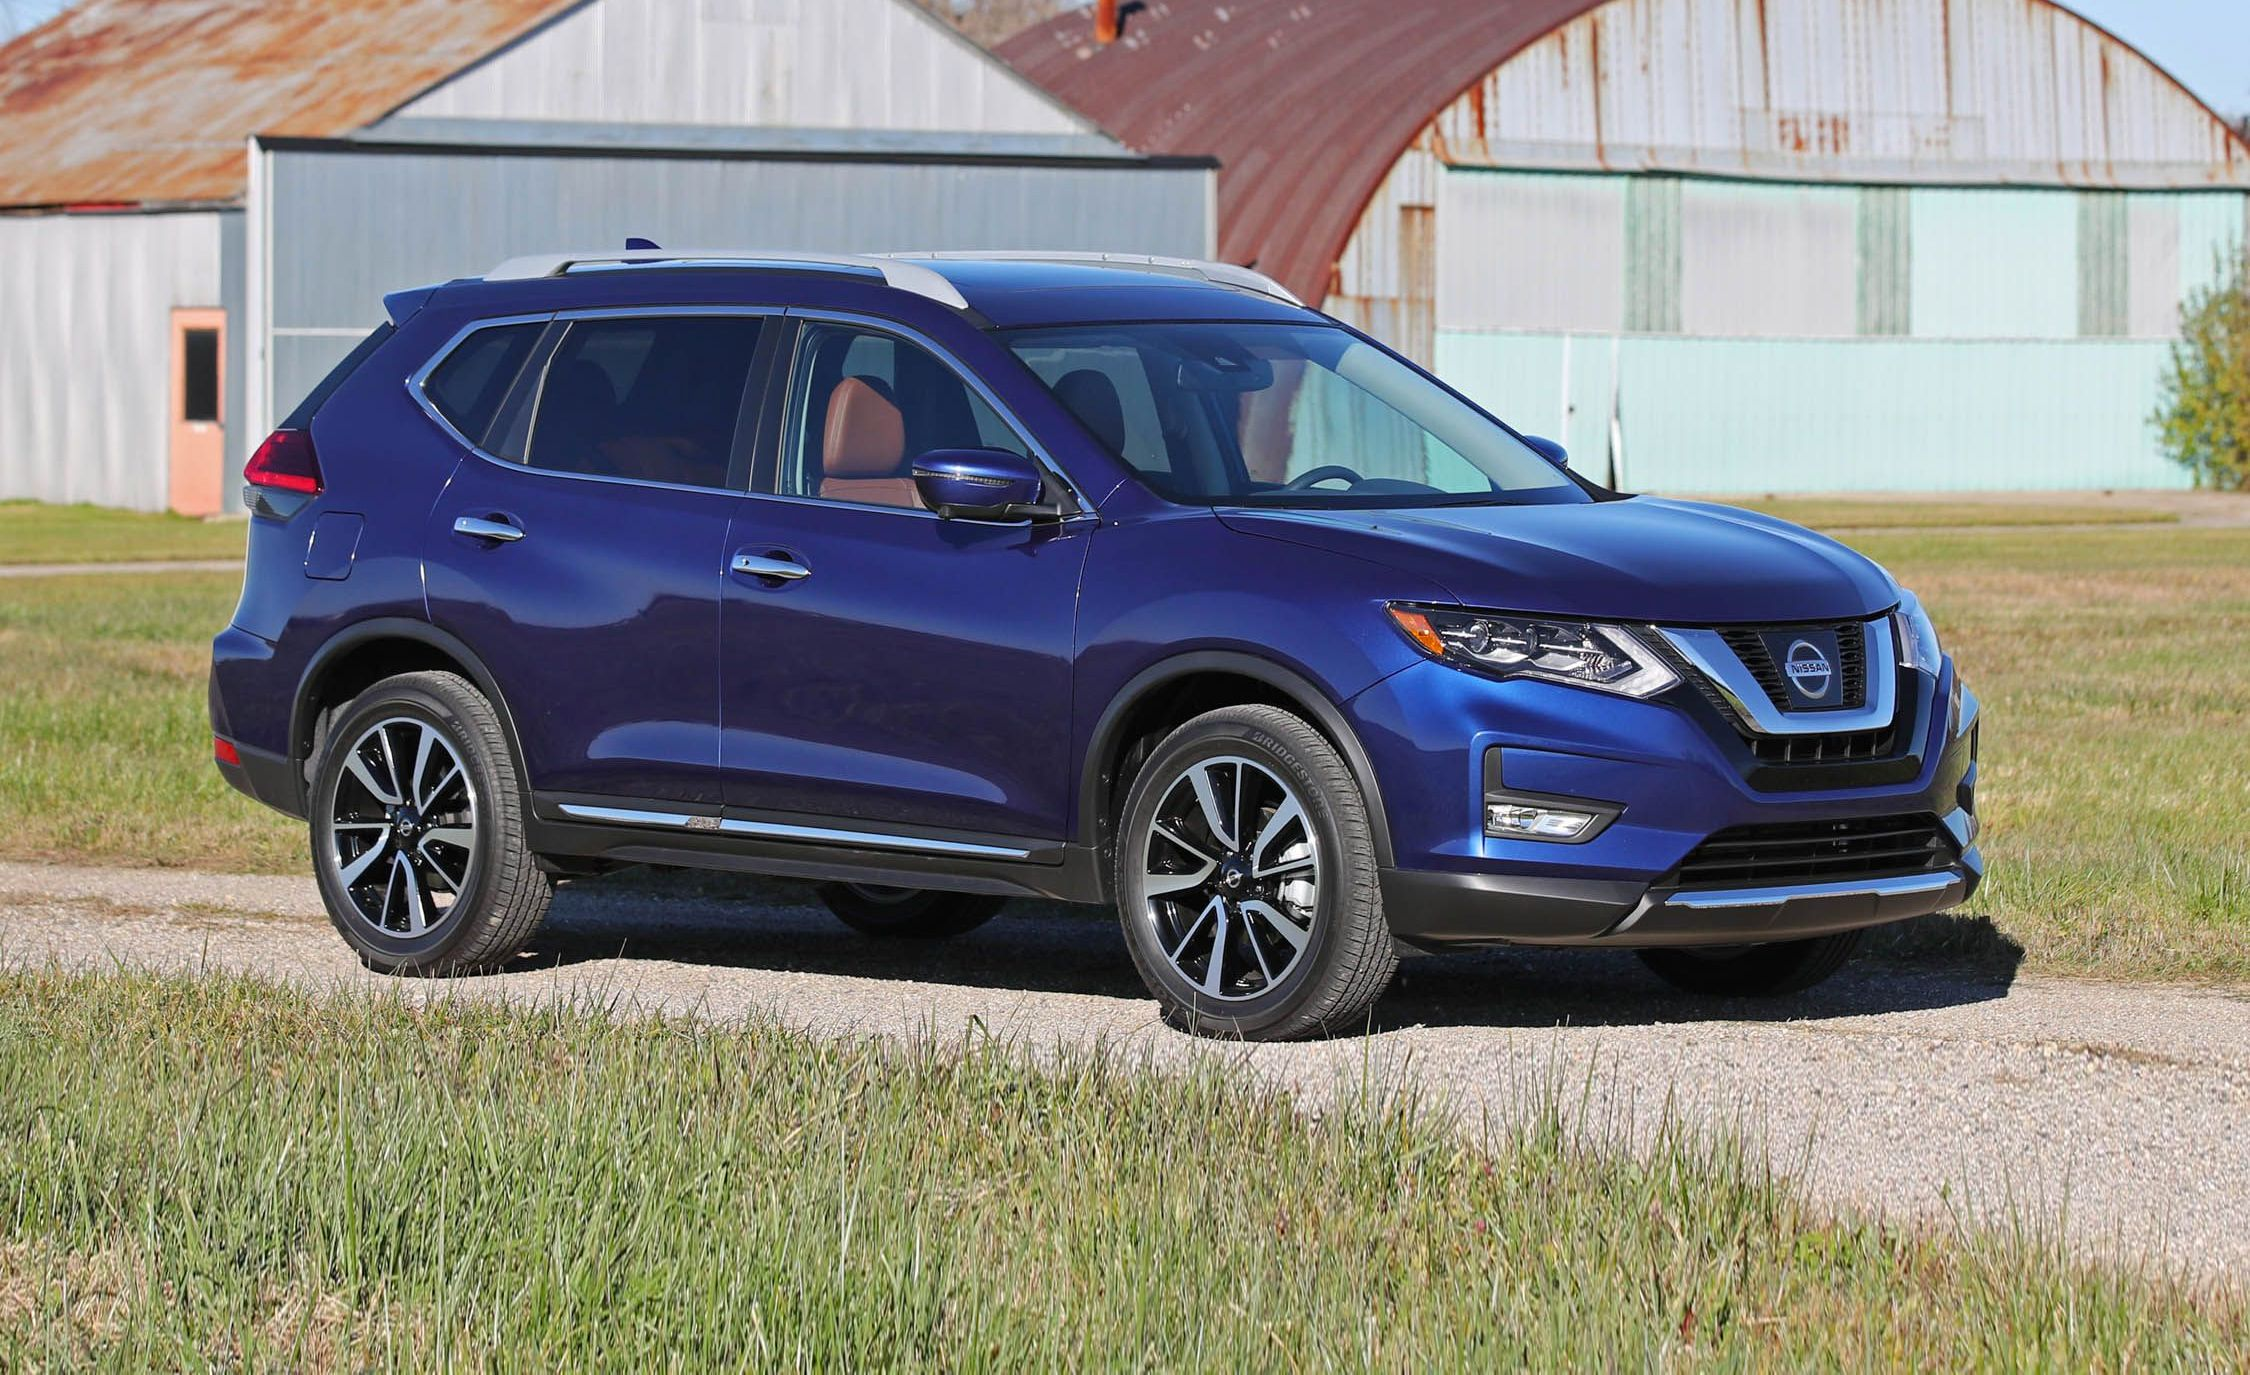 2019 Nissan Rogue Reviews Nissan Rogue Price Photos And Specs